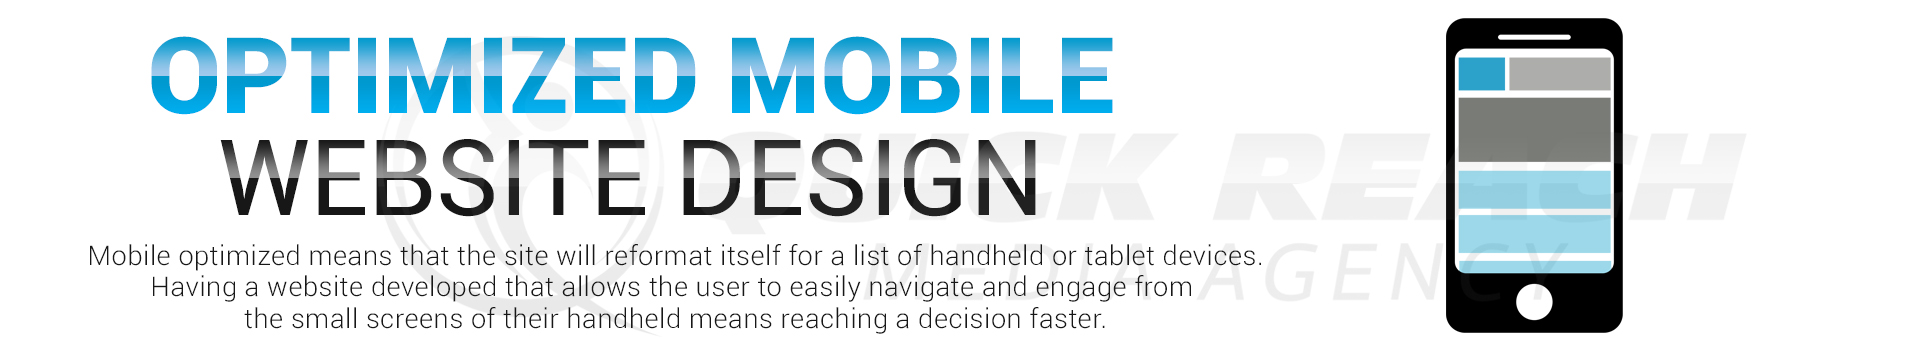 Optimized Mobile Websites